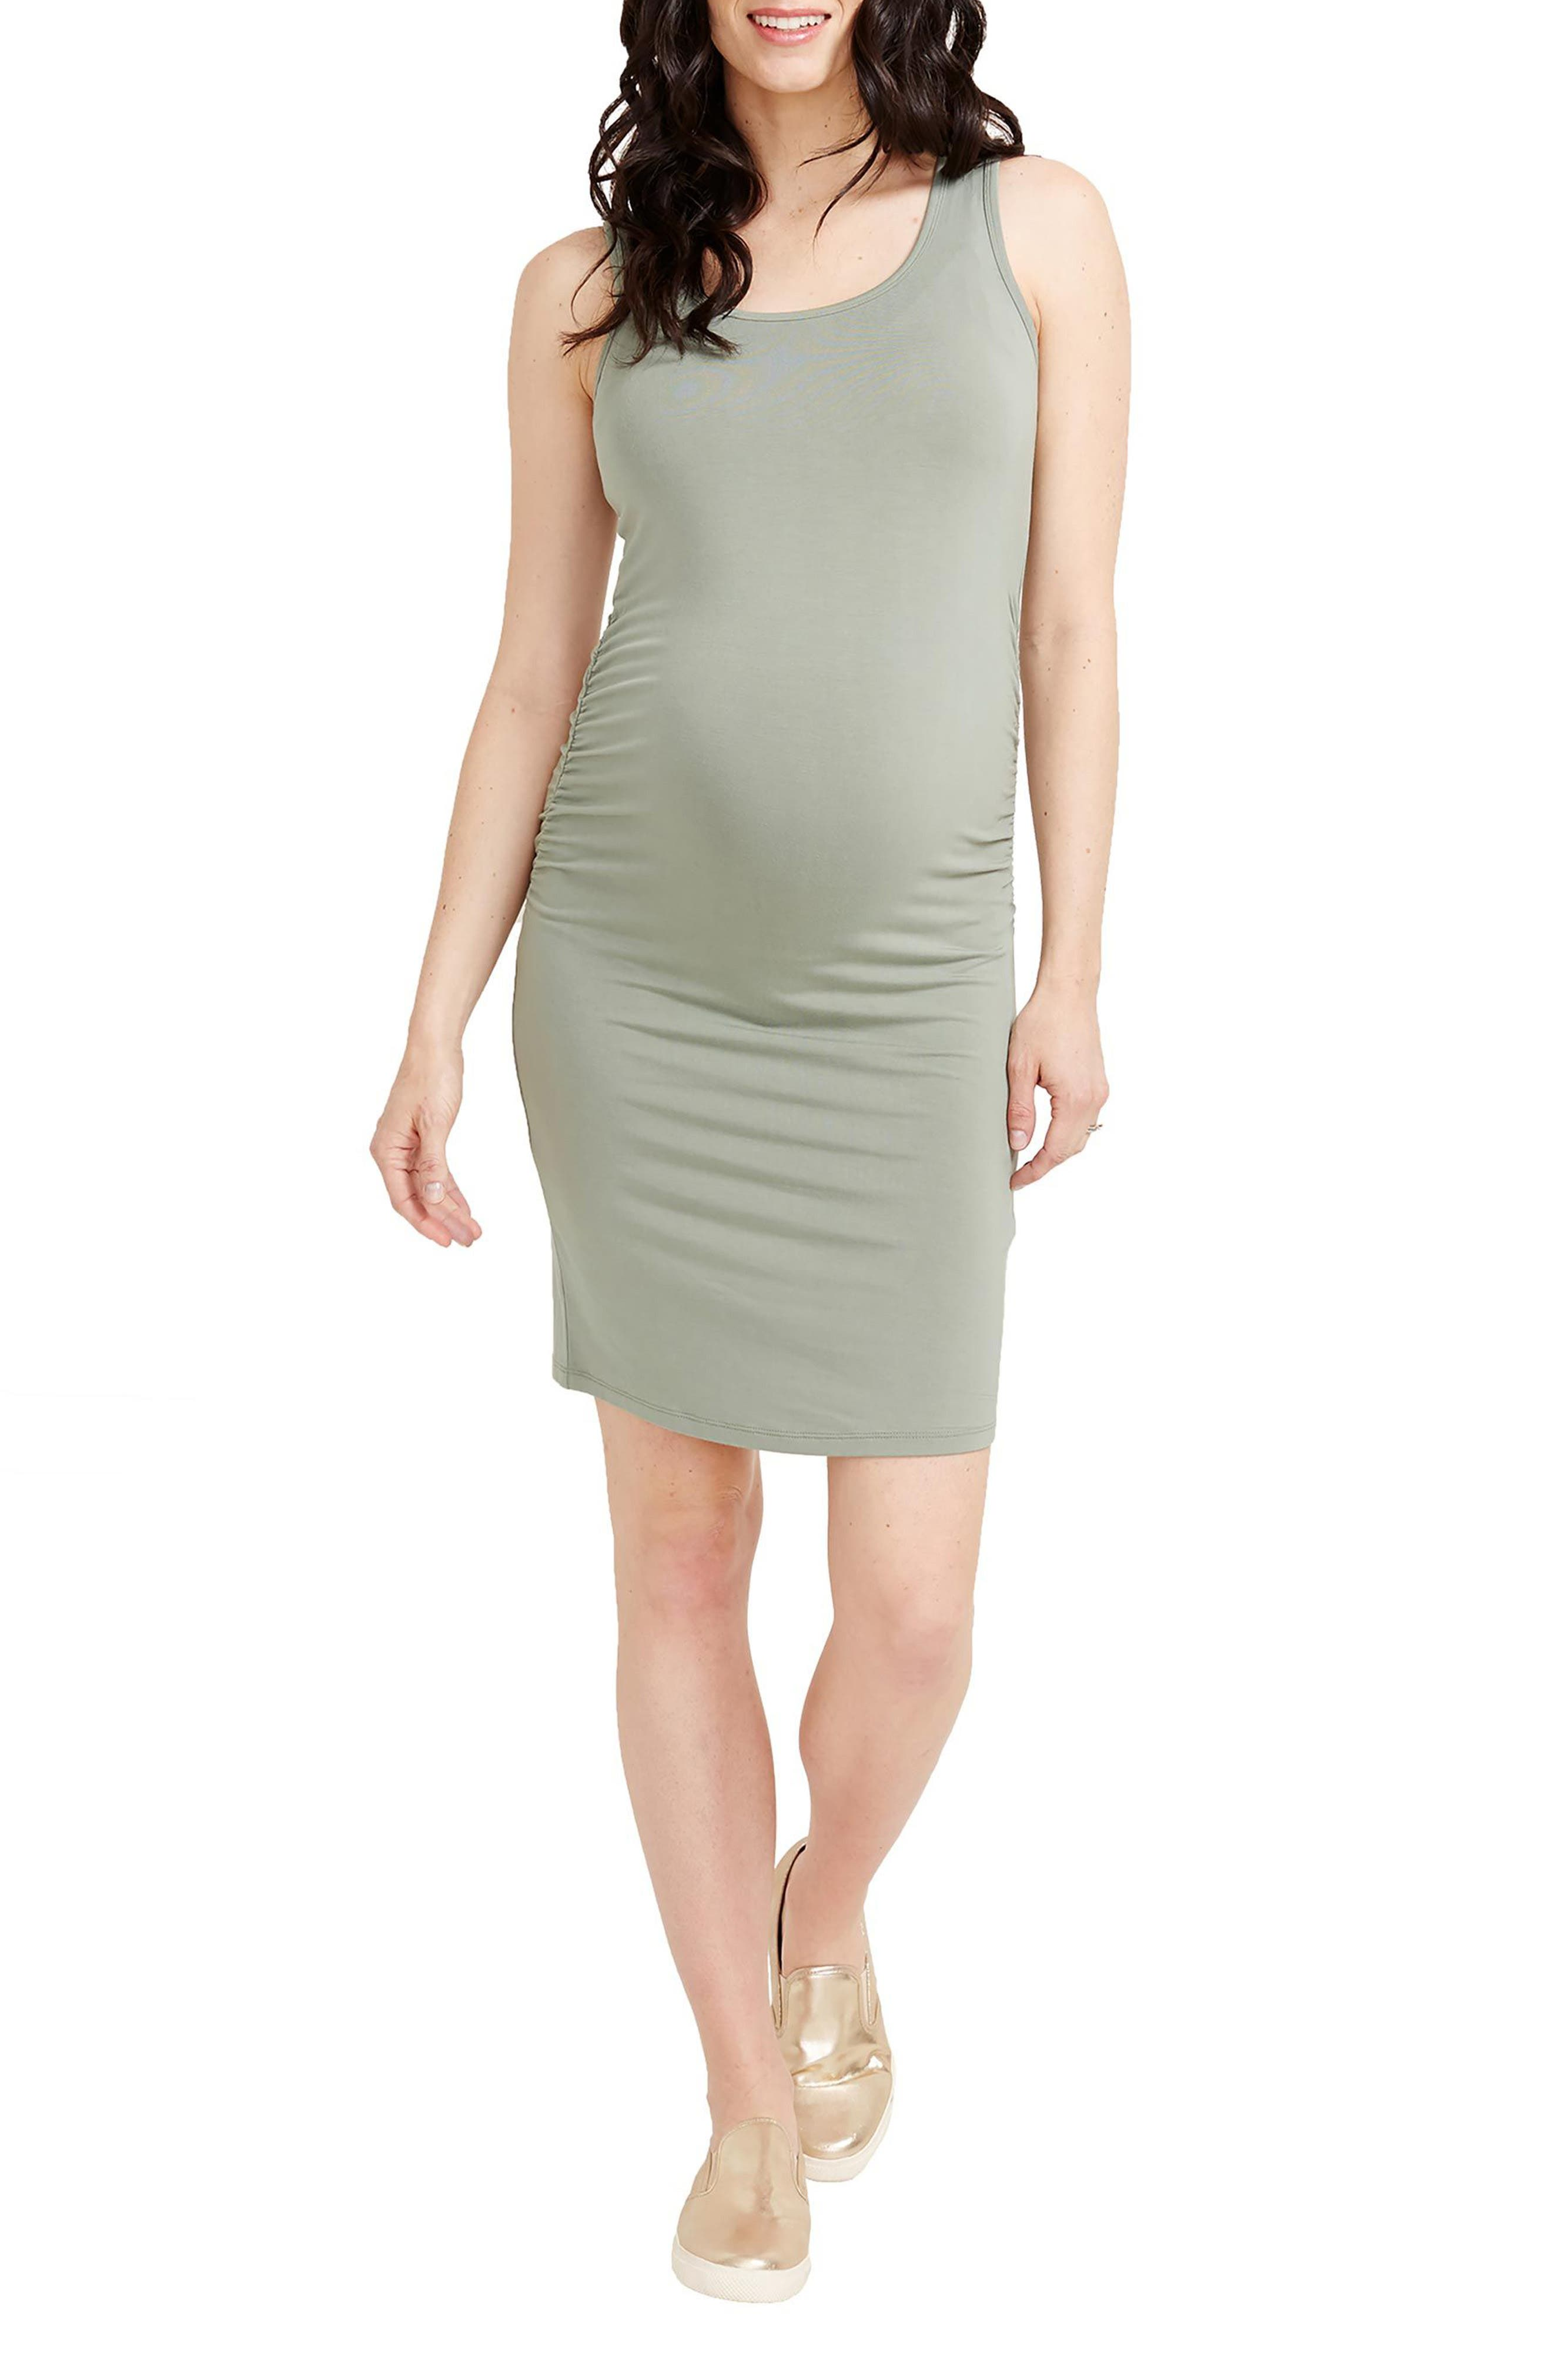 ROSIE POPE 'Kimberly' Ruched Side Maternity Tank Dress